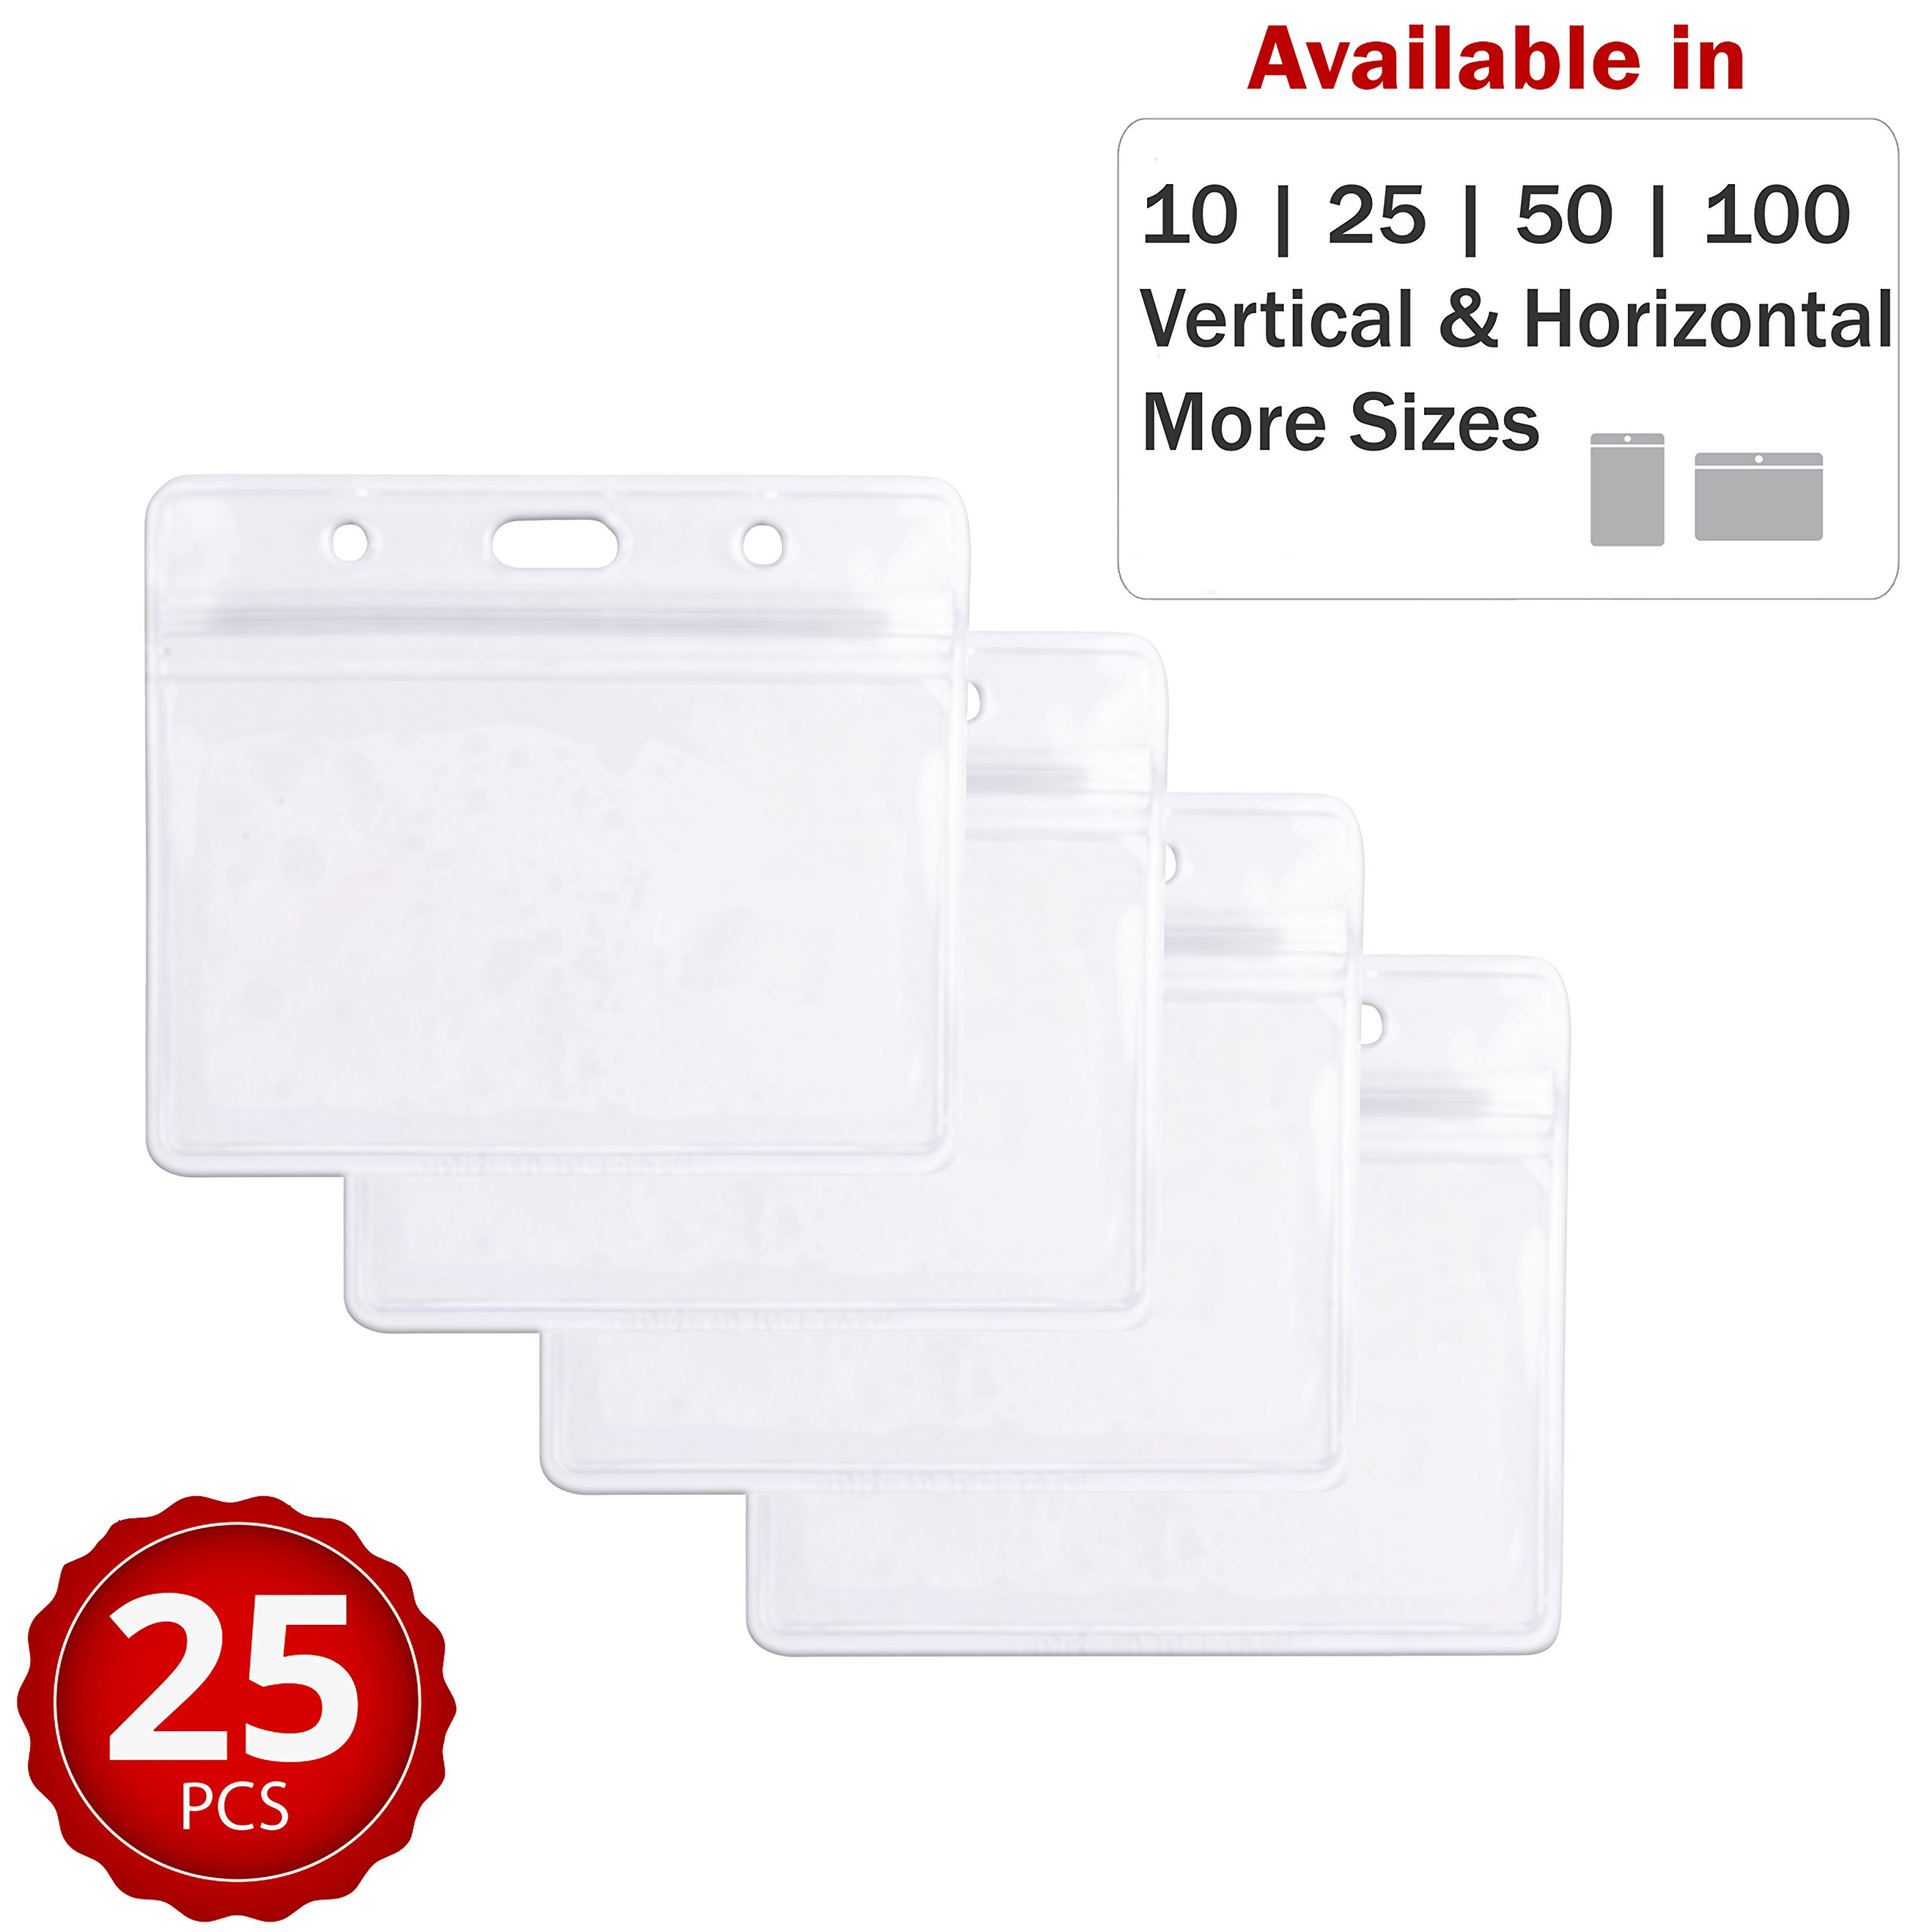 Durable & Heavy-Duty ID Badge Holders ~ Premium Quality, Clear Plastic, Waterproof & Dustproof ~ for ID Cards, Moms, Teachers, Tours, Events, Cruises & More (25 Pack, Horizontal) by Stationery King